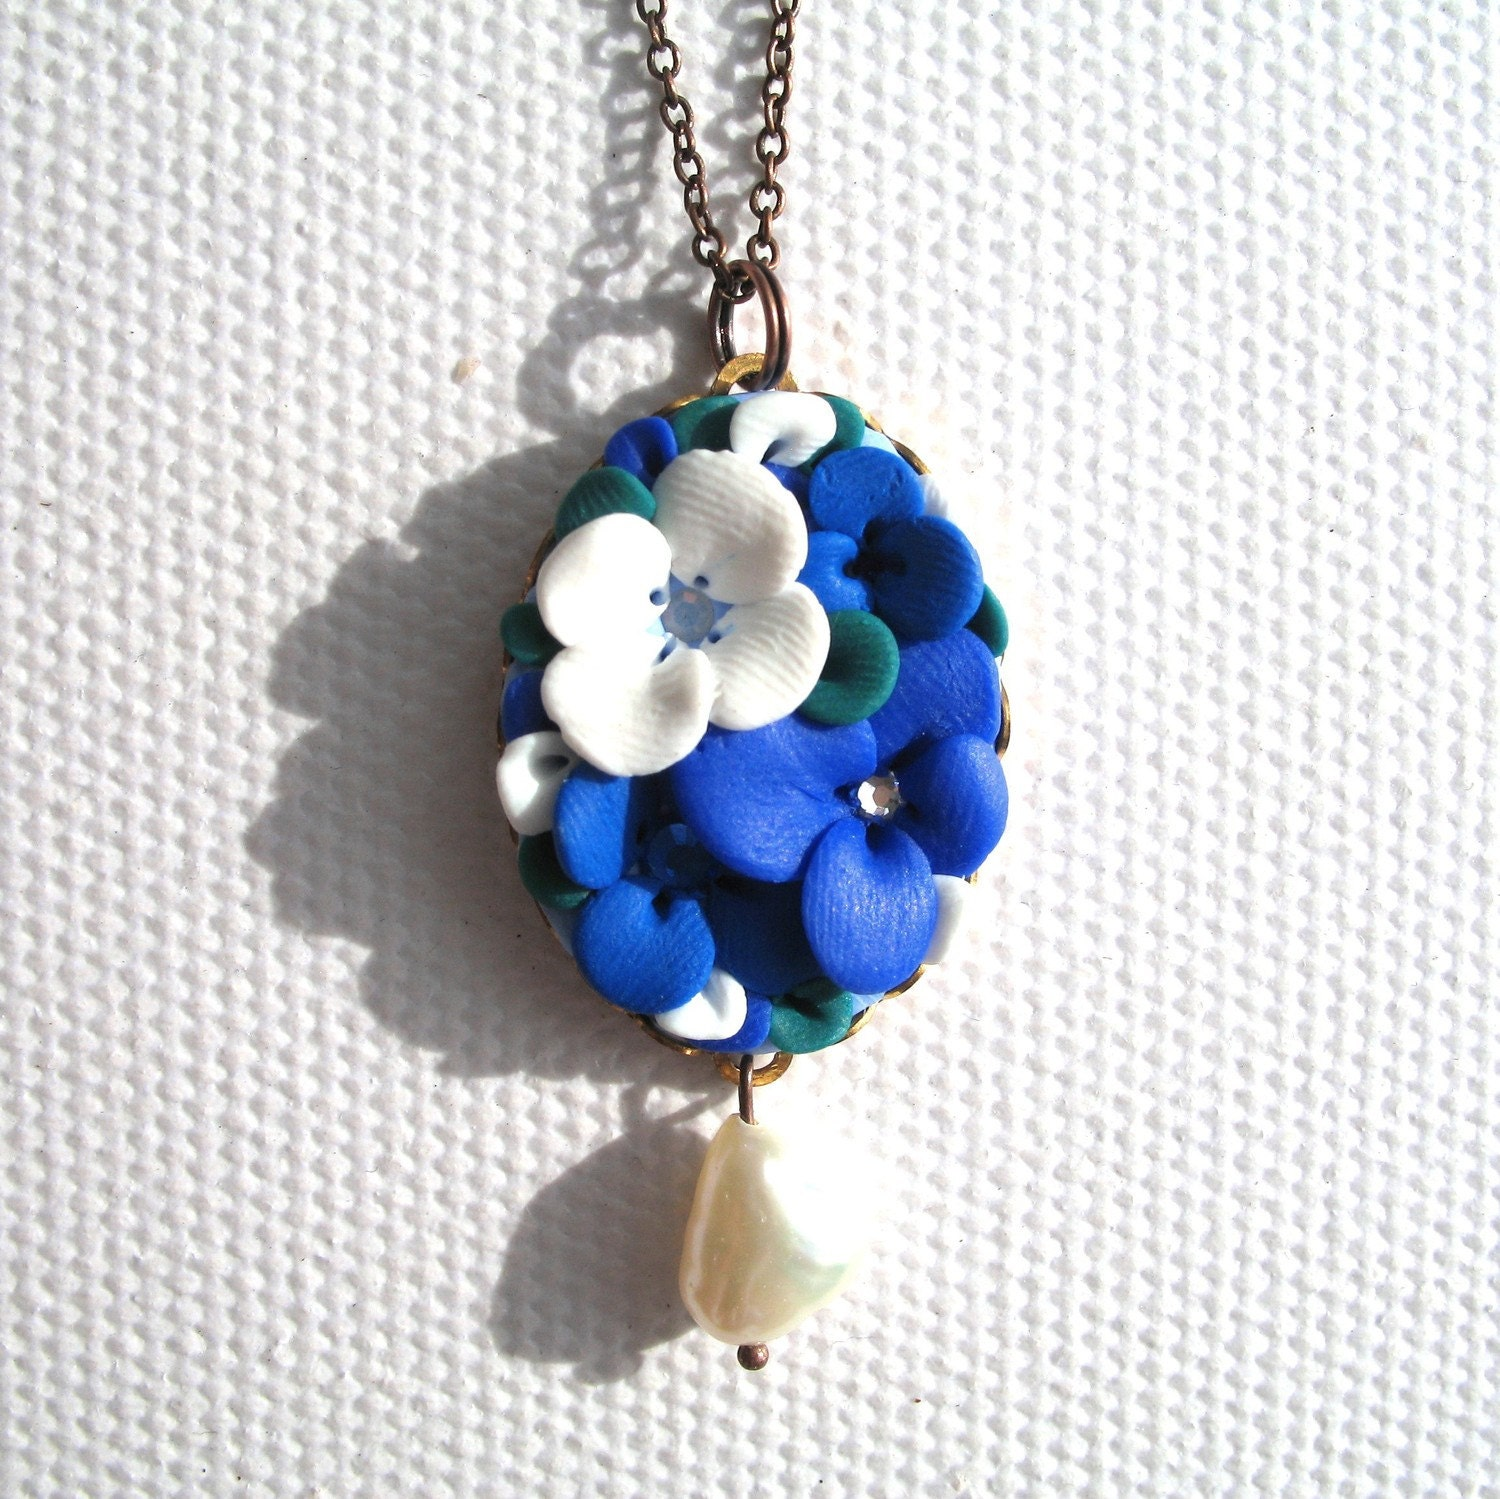 Inga - Clay flower necklace, pendant setting 30mm by 22mm